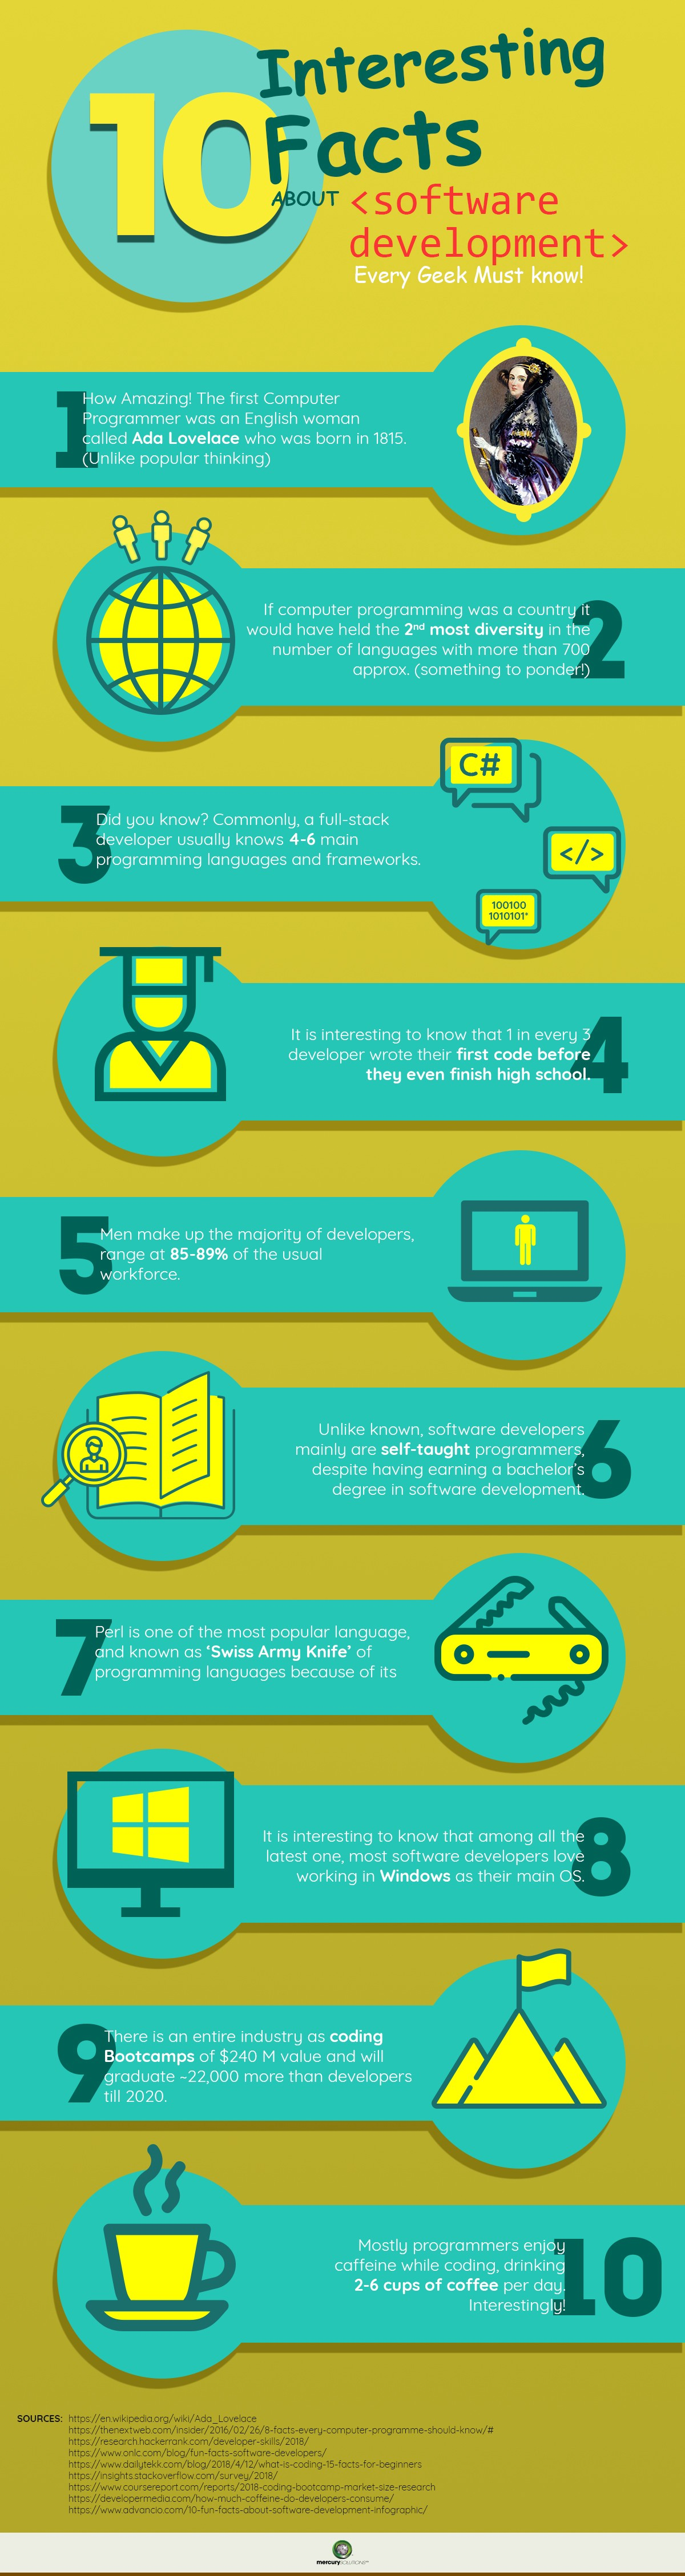 10 Interesting Facts About Software Development Infographic By Agile Actors Playbook Medium